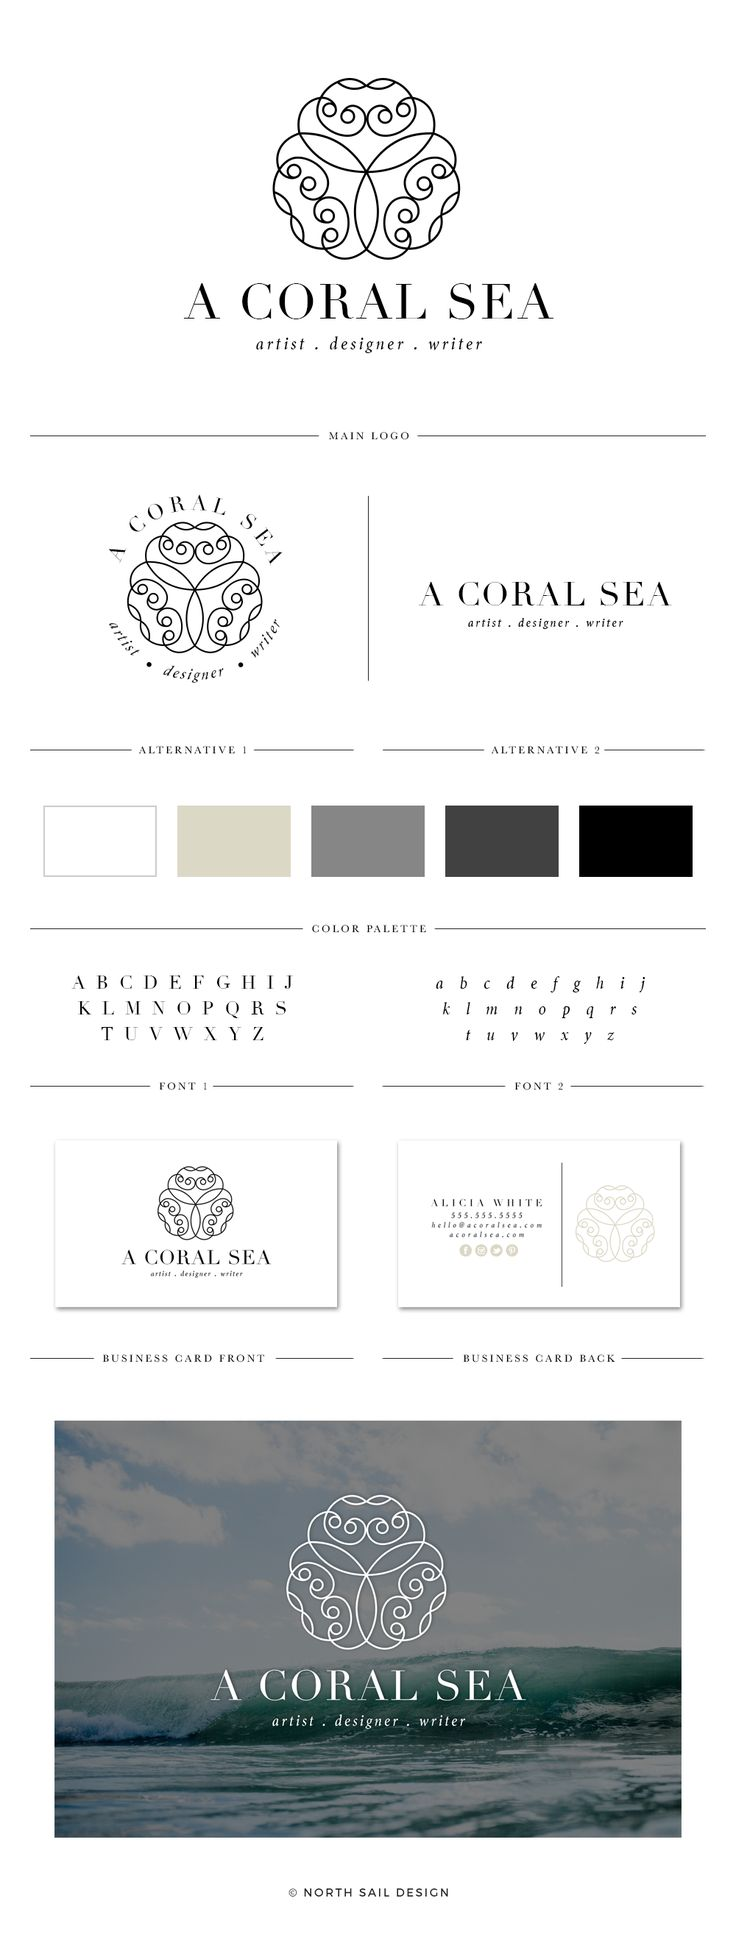 makeup artist cover letters%0A A premade logo is a quick and easy way to achieve a professional looking  brand that    Event PlannersMakeup ArtistsWeb